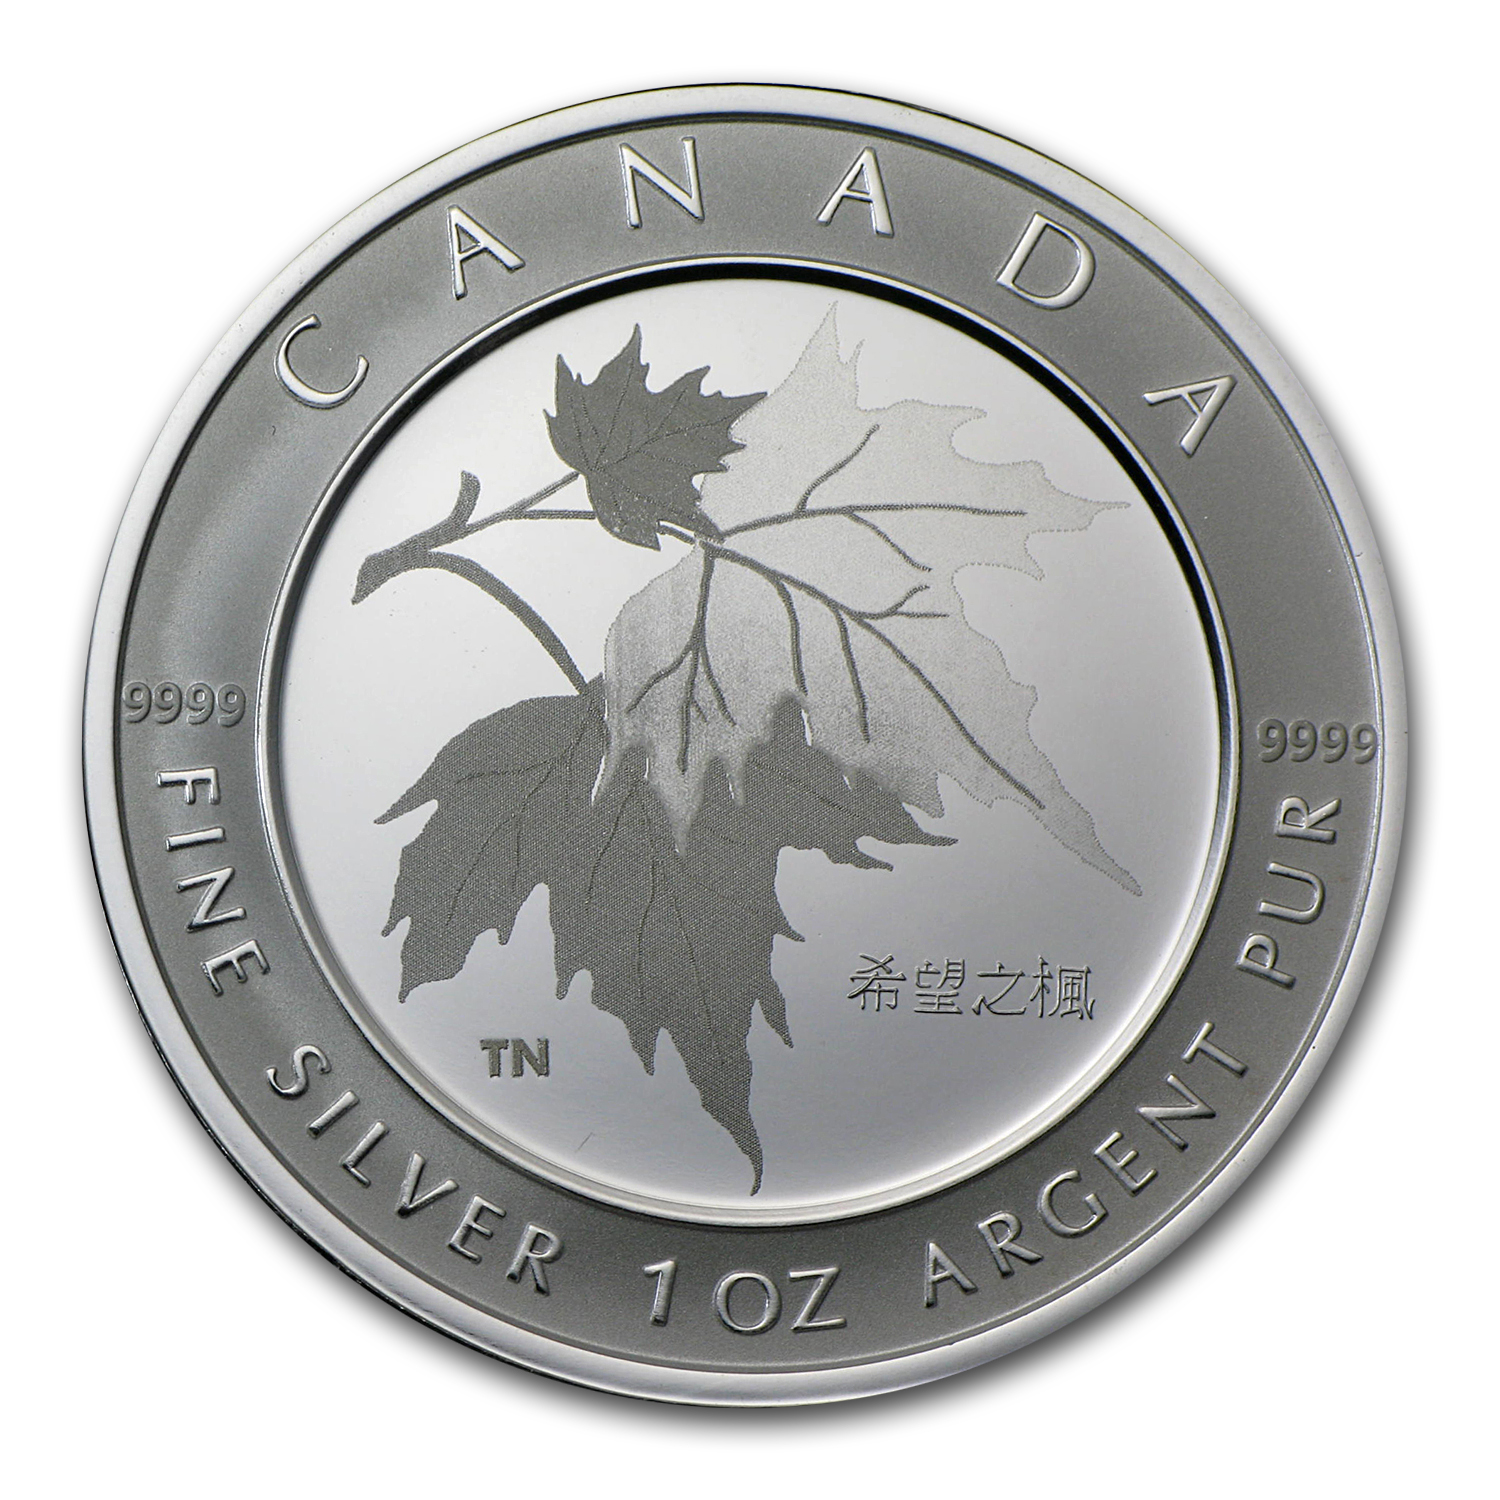 2005 1 oz Silver Canadian Maple Leaf of Hope (W/Box & COA)